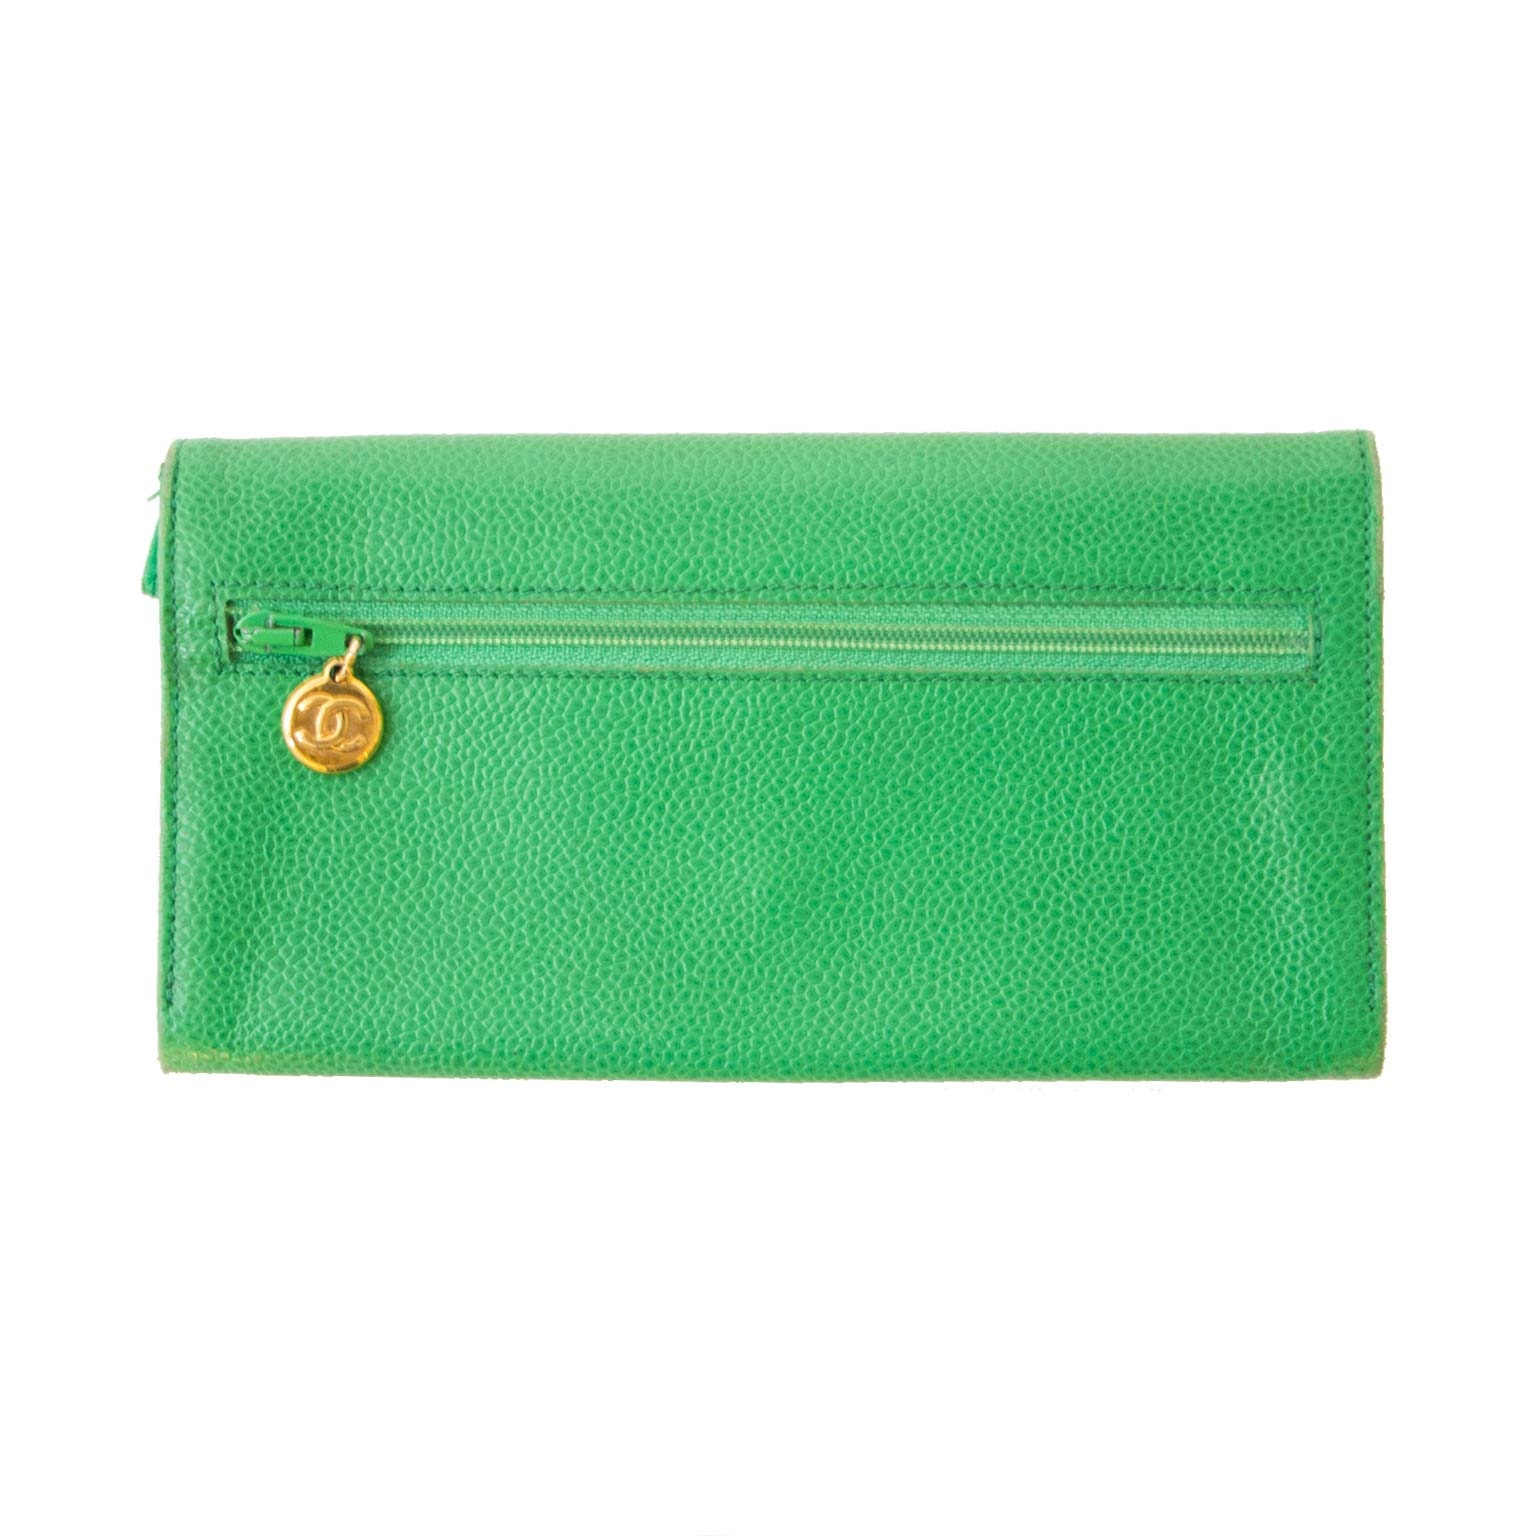 Chanel green double c wallet now for sale at labellov vintage fashion webshop belgium